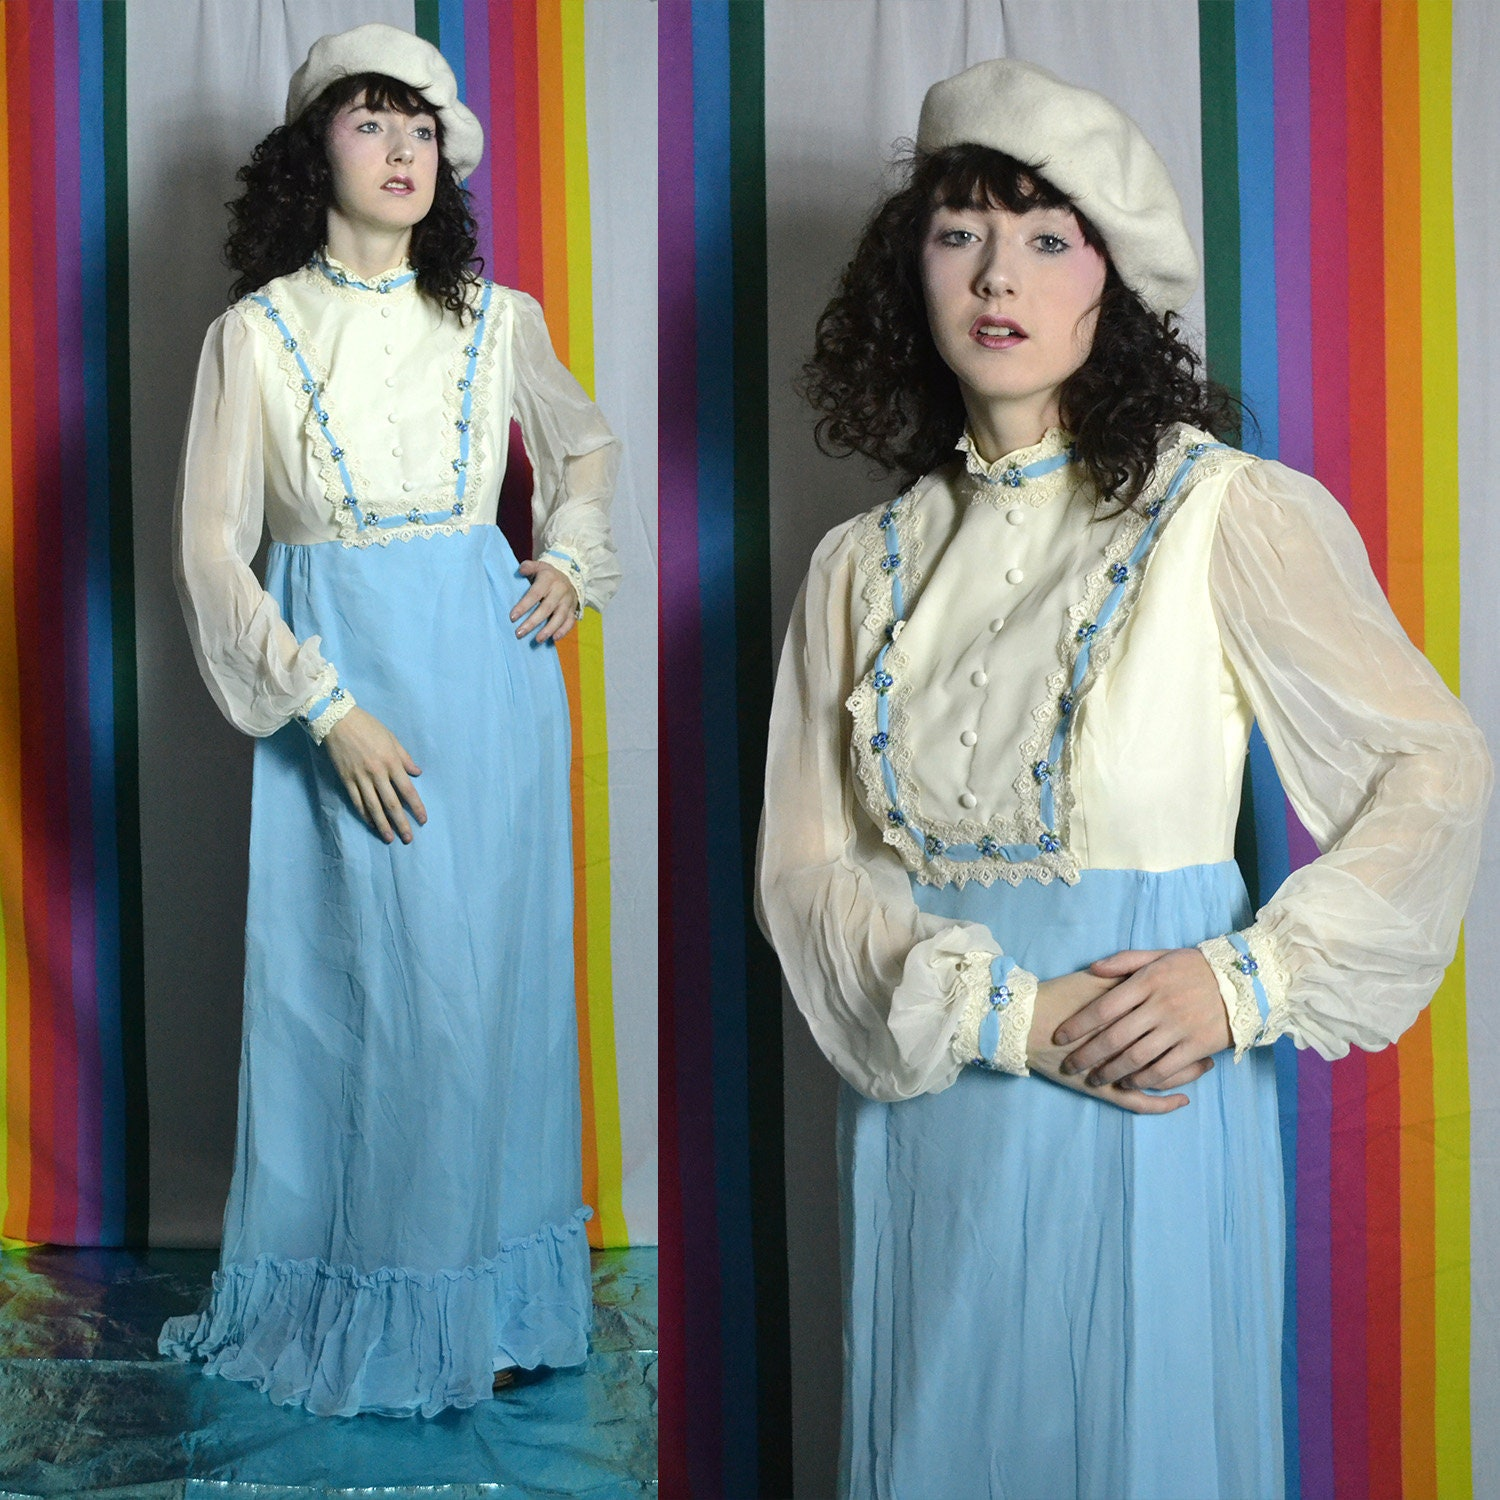 001a6113655a 60s prairie cream and powder blue maxi dress with floral swiss ribbon  embroidery and sheer balloon sleeves